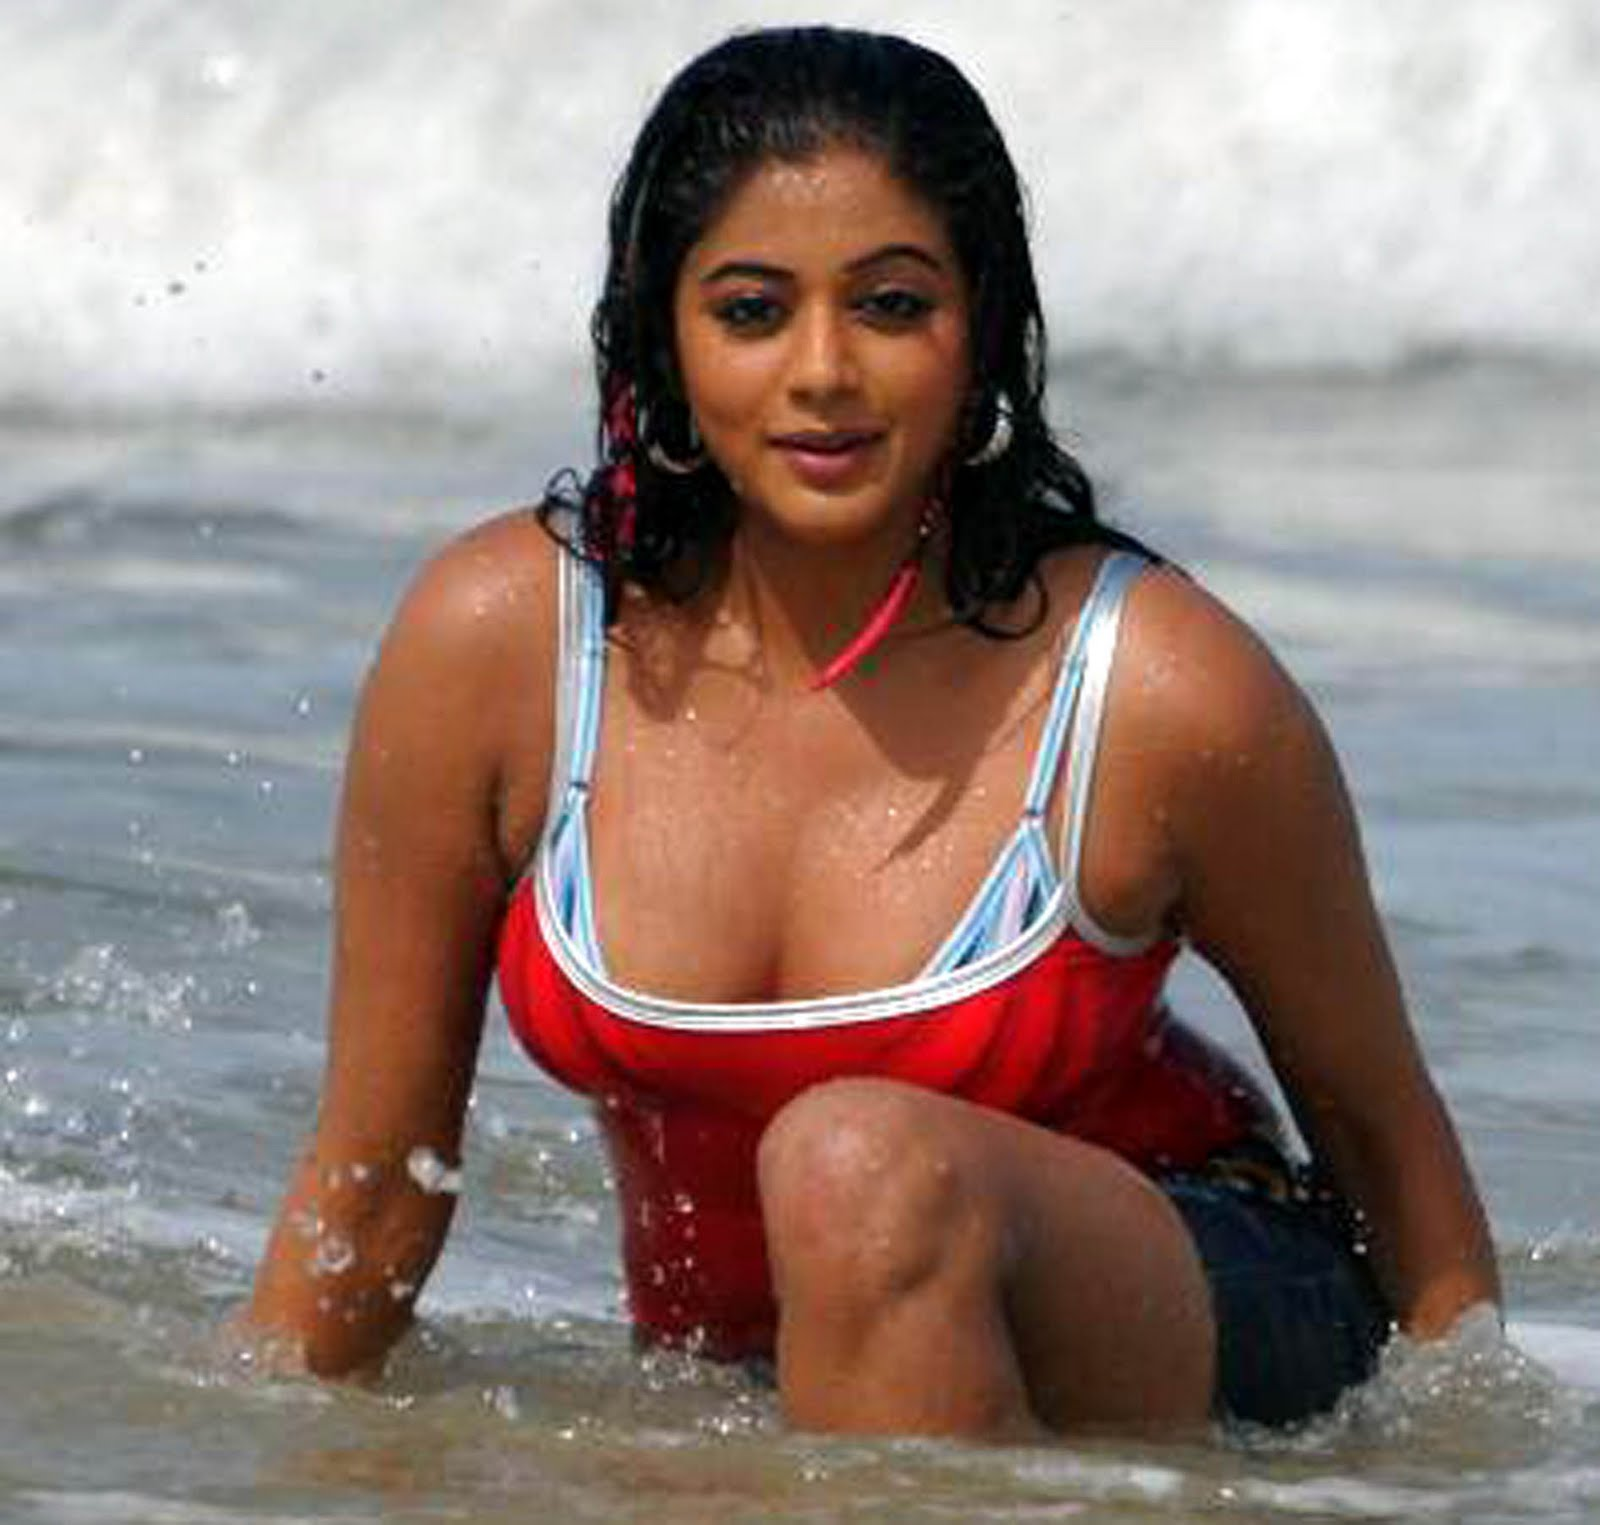 For that priyamani koen